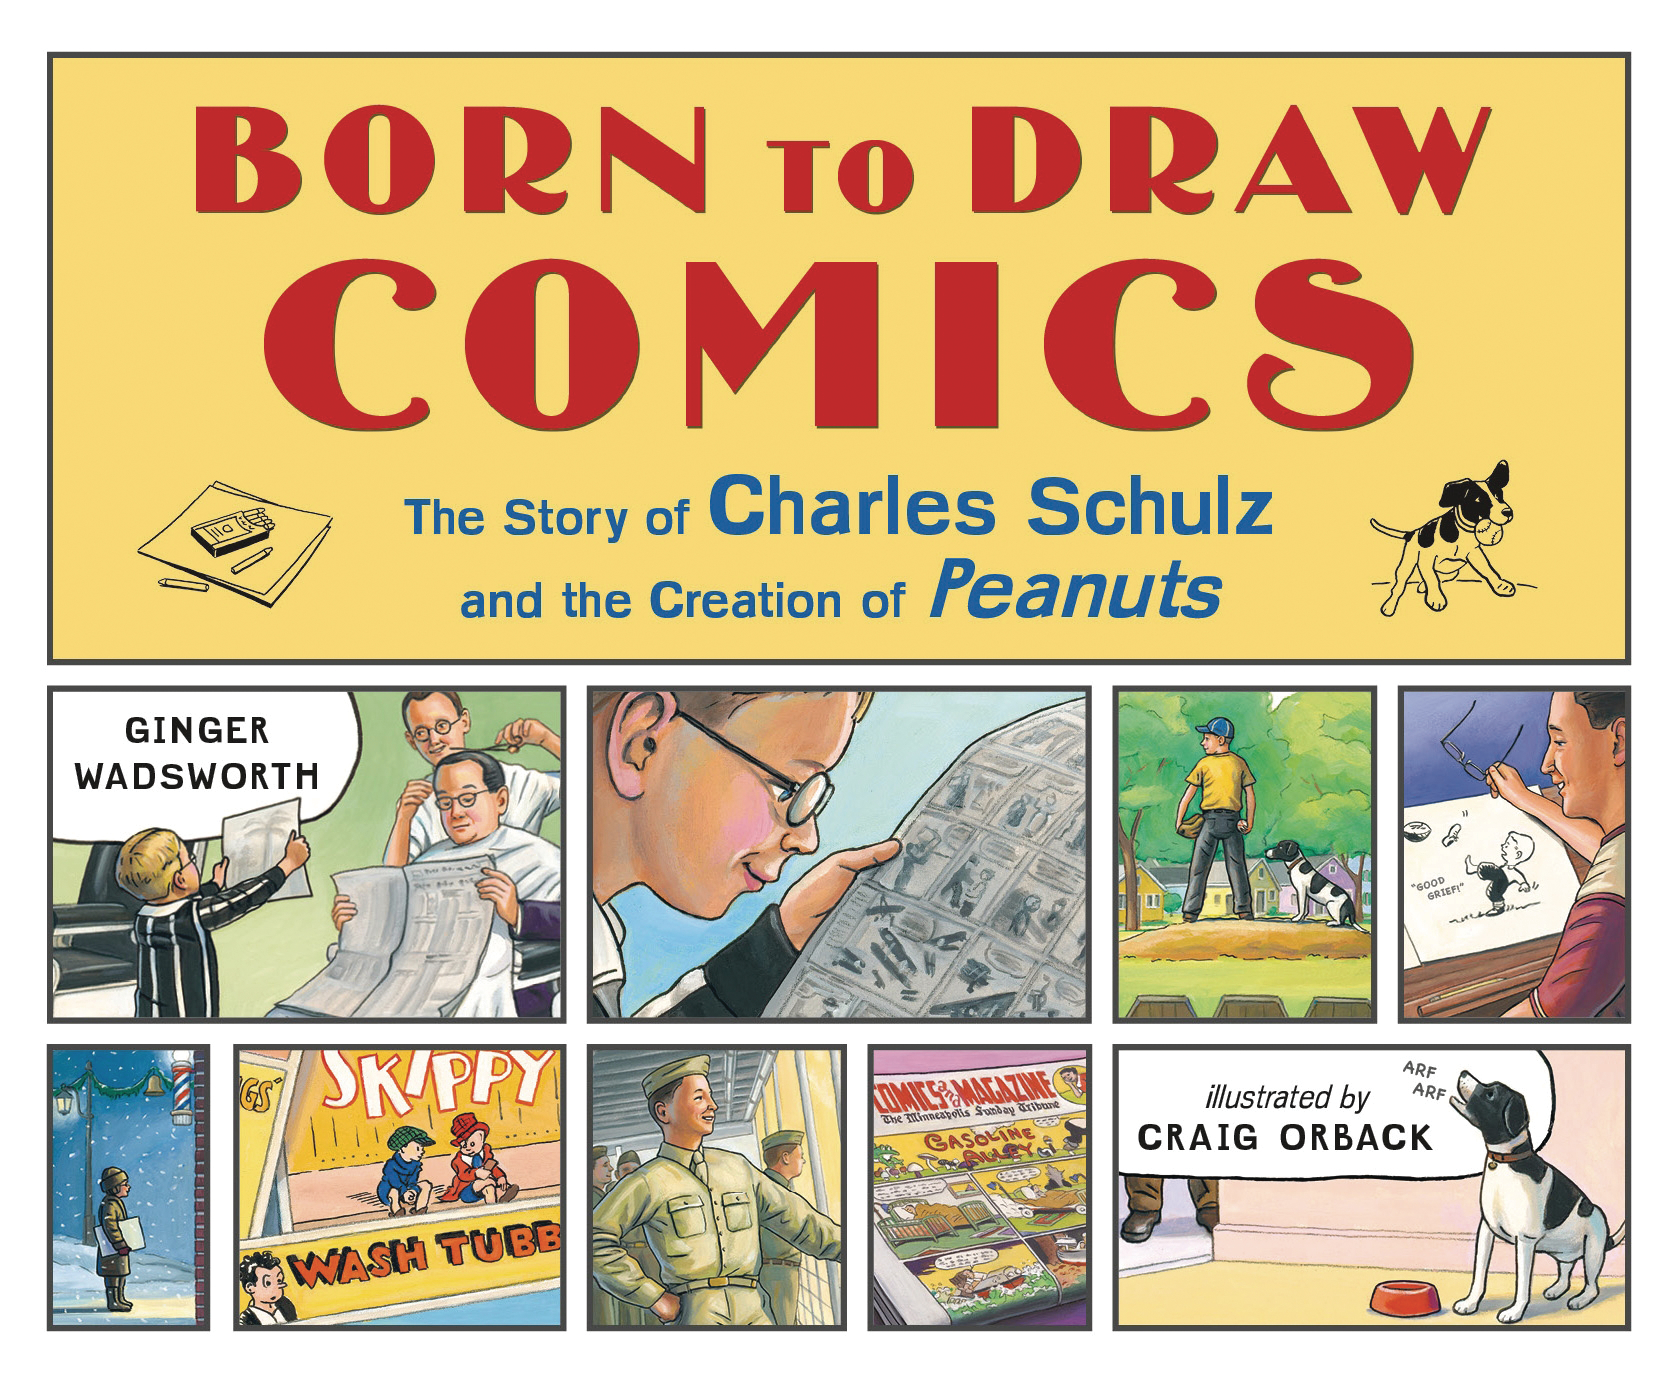 BORN TO DRAW COMICS STORY CHARLES SCHULZ HC